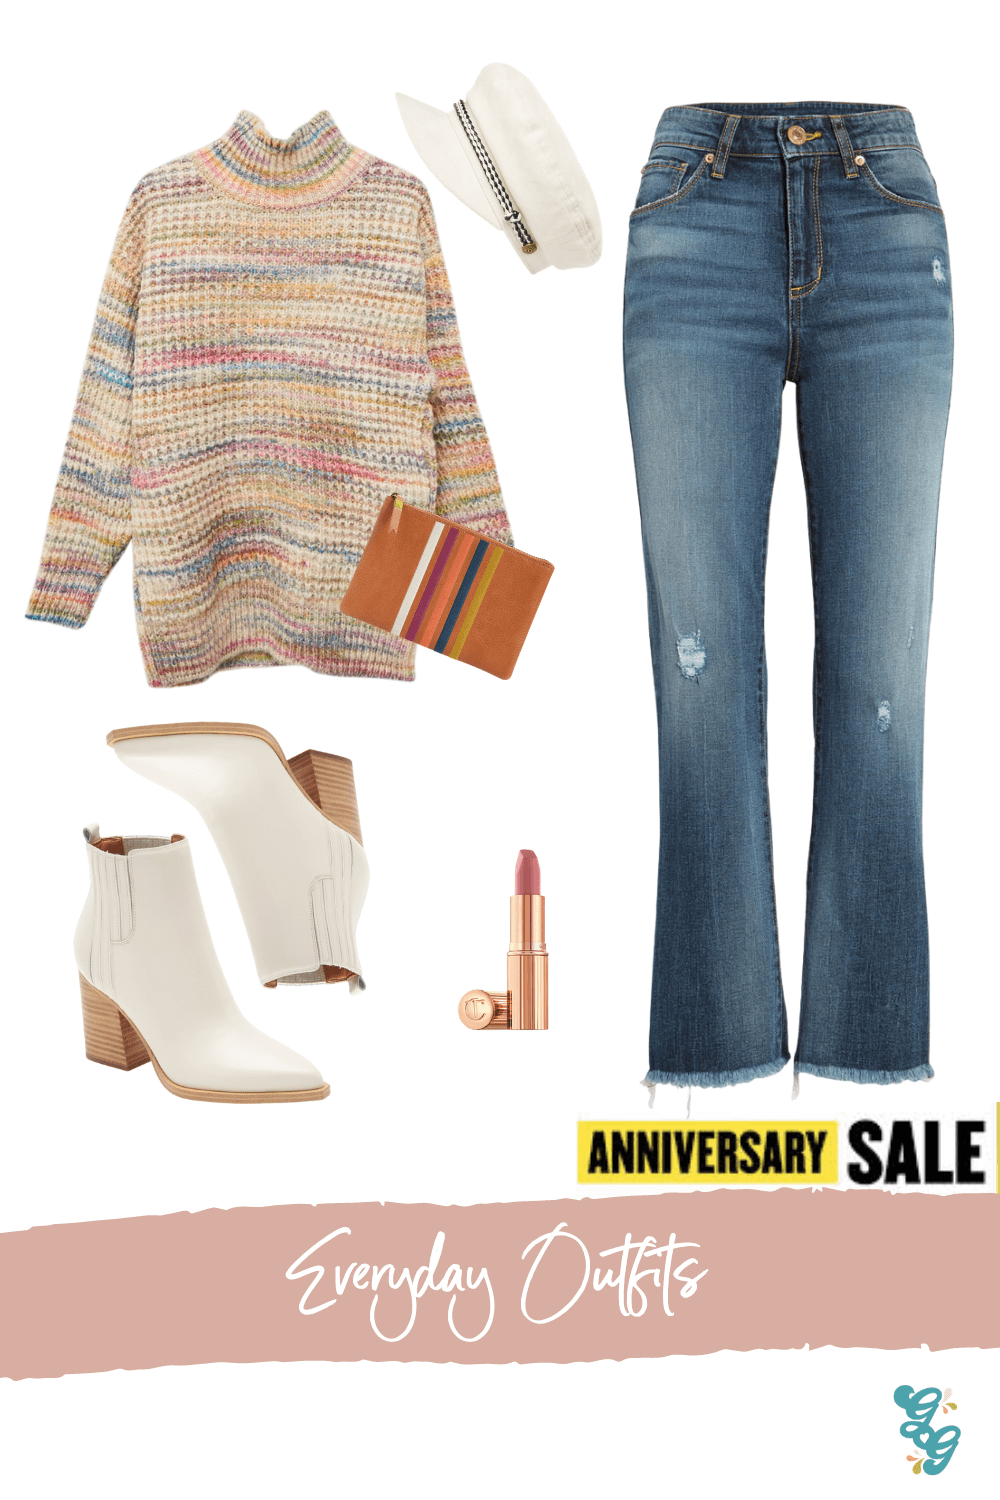 Everyday Fall Outfits from the NSALE | NSALE 2020 | The Glitter Gospel, Brooke Distressed High Waist Crop Flare Jeans, Space Dye Turtleneck Sweater, Charlotte Tilburry Pillow Talk, Oshay Pointed Toe Bootie MARC FISHER LTD, Madewell Clutch, Brixton Baker Boy Cap